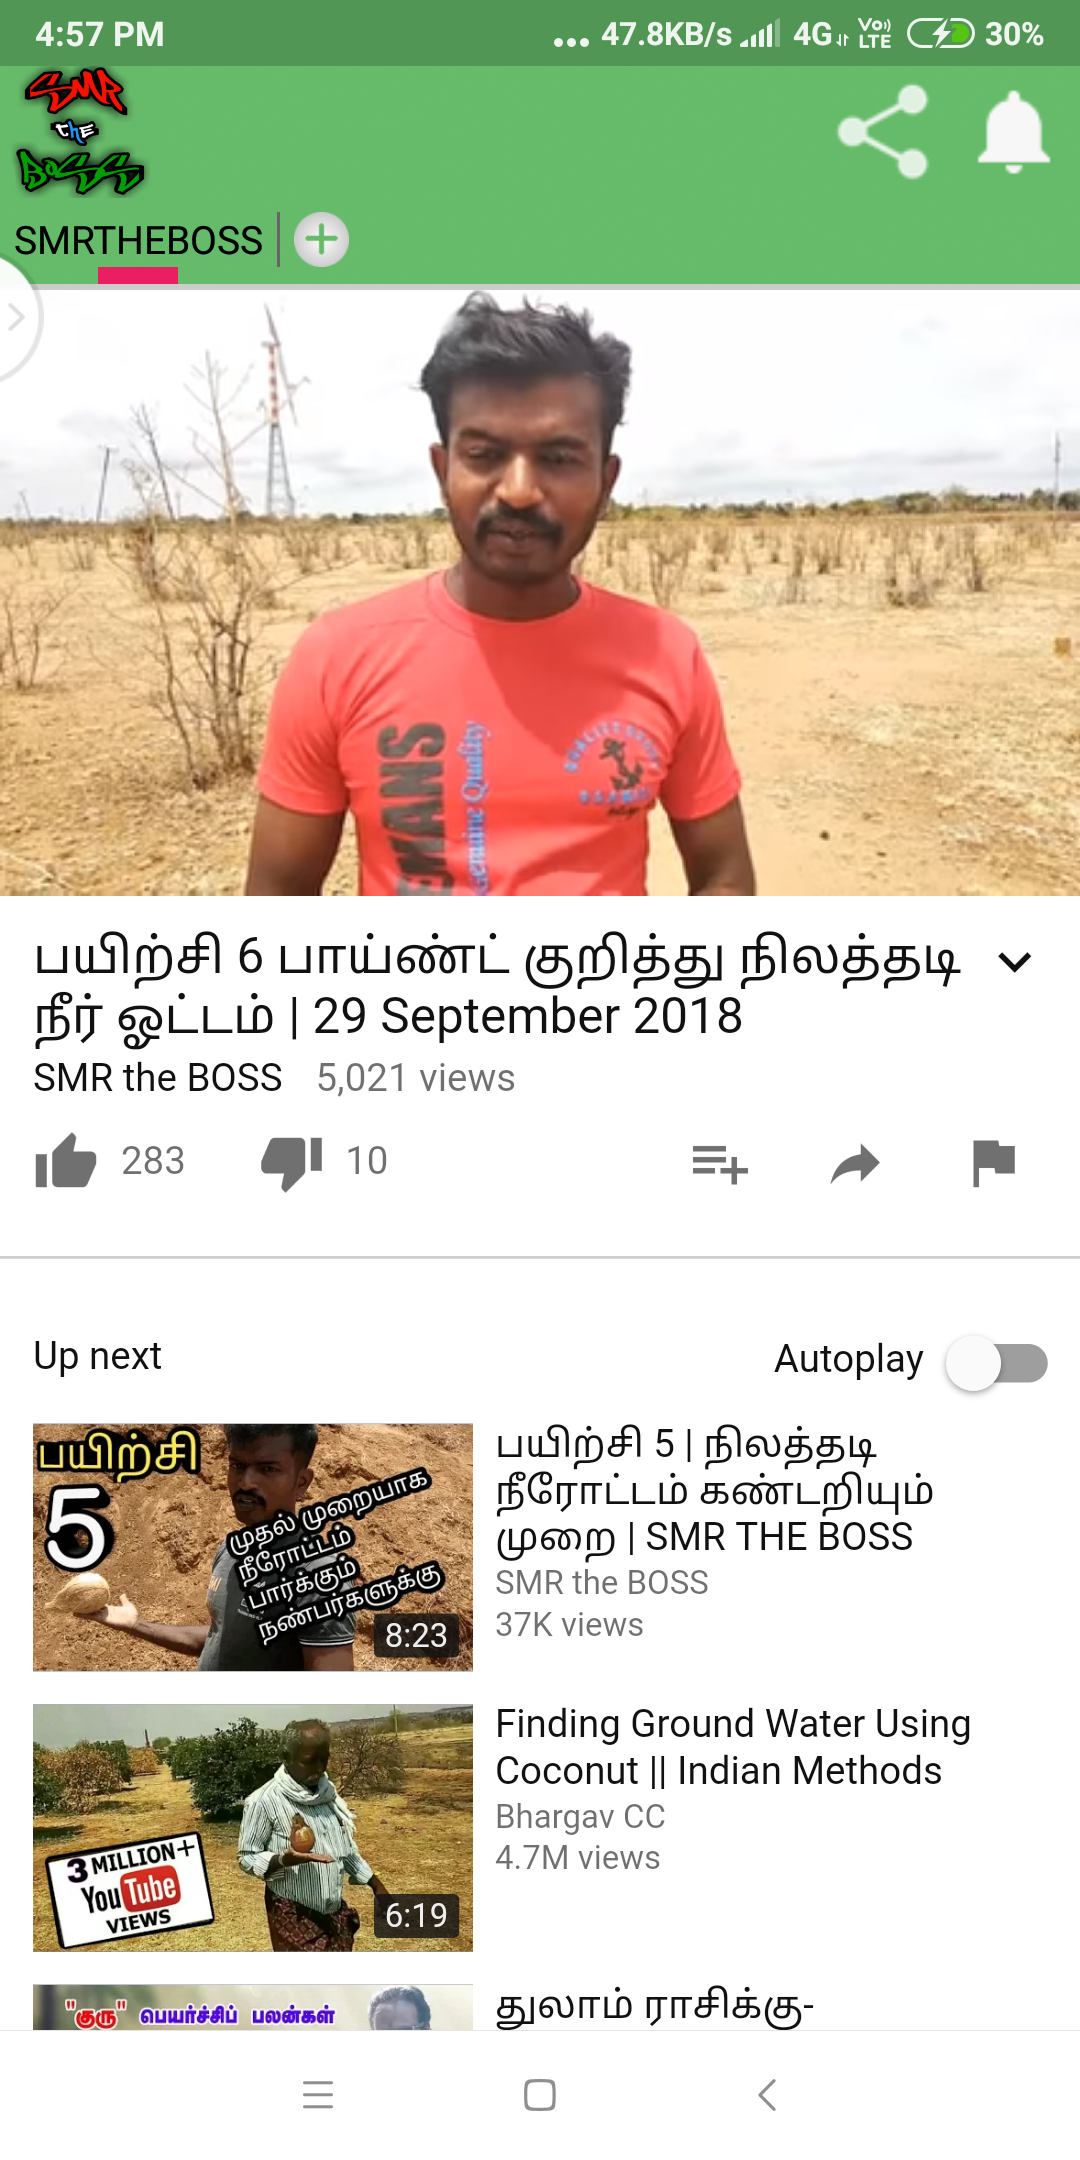 SMRTHEBOSS Android App - Download SMRTHEBOSS